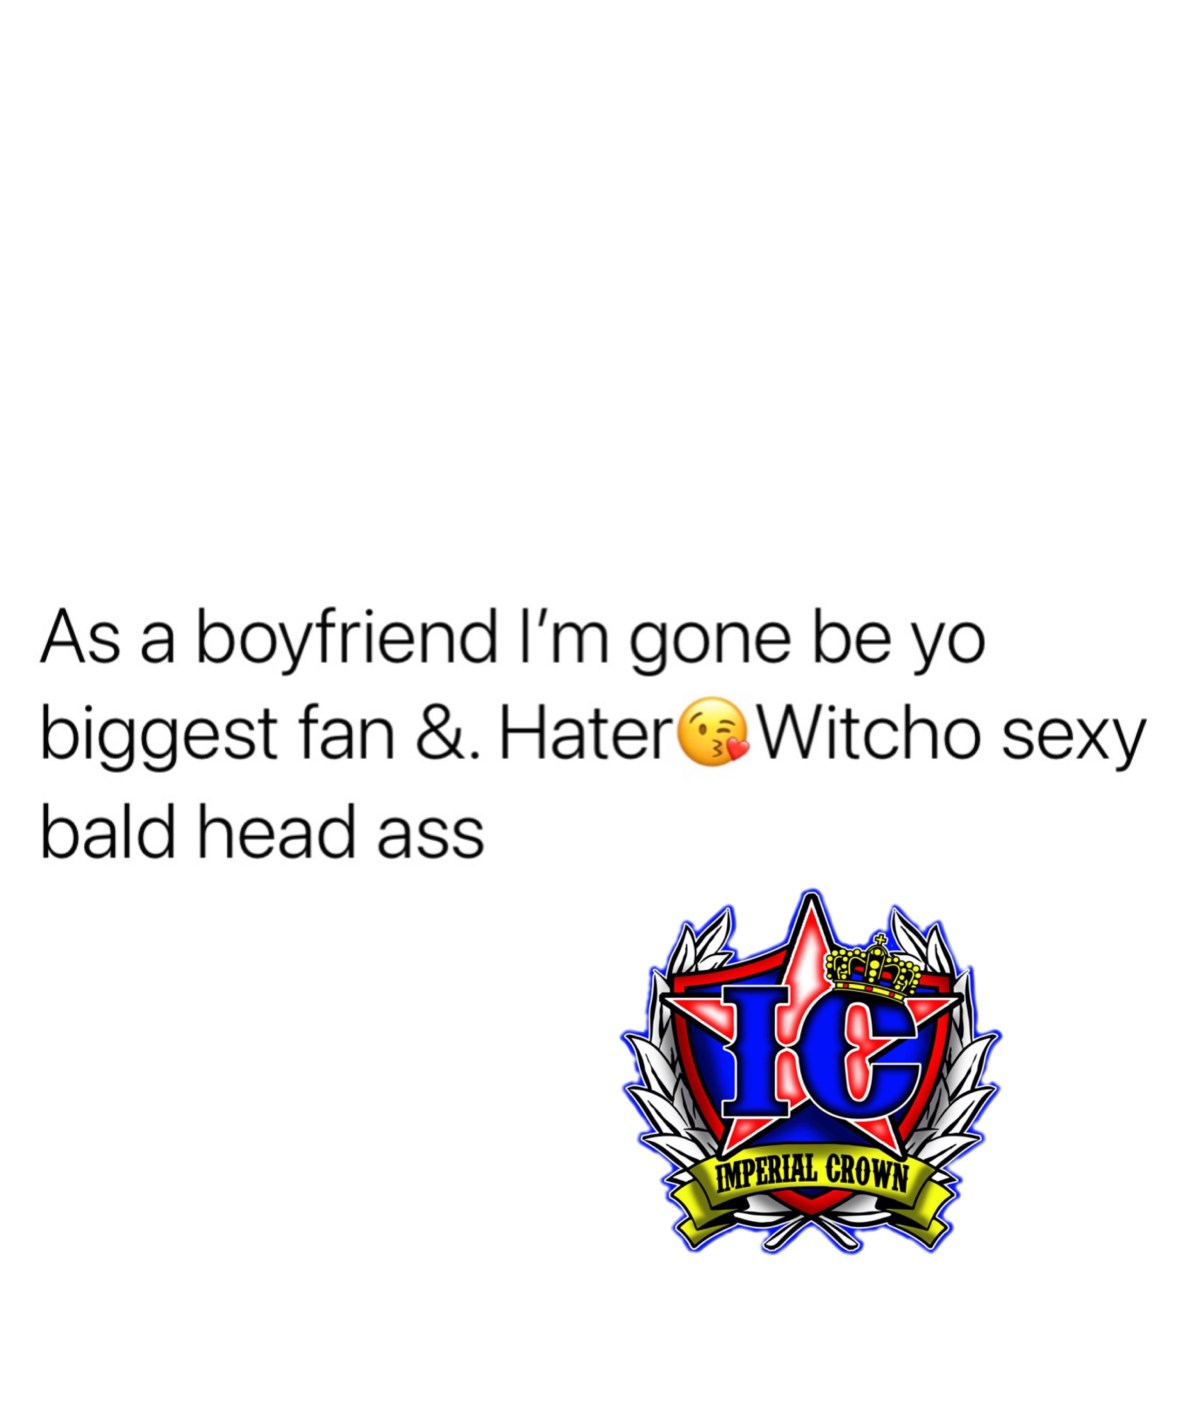 As a boyfriend I'm going to be yo biggest fan and hater😘 with your sexy bald headed ass